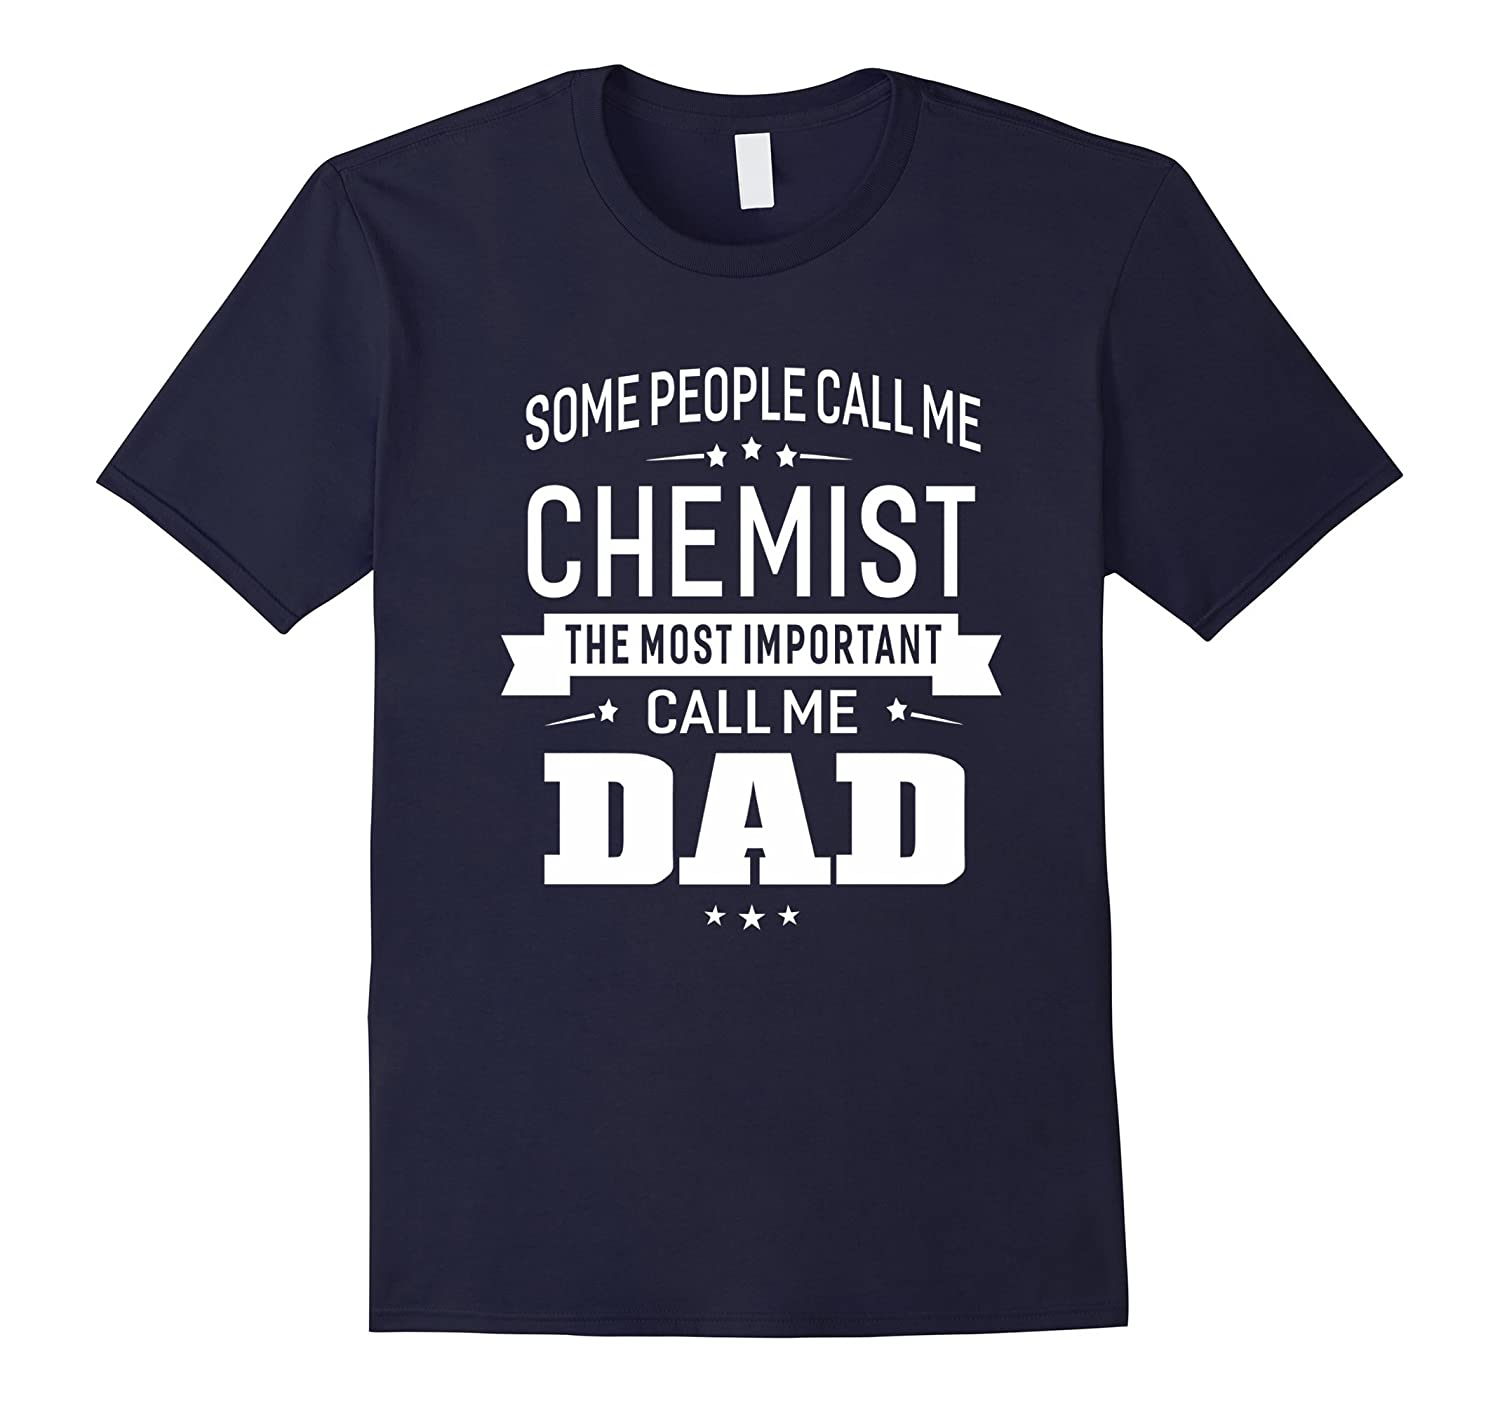 Some Call Me Chemist The Important Call Me Dad Men T-shirt-TD